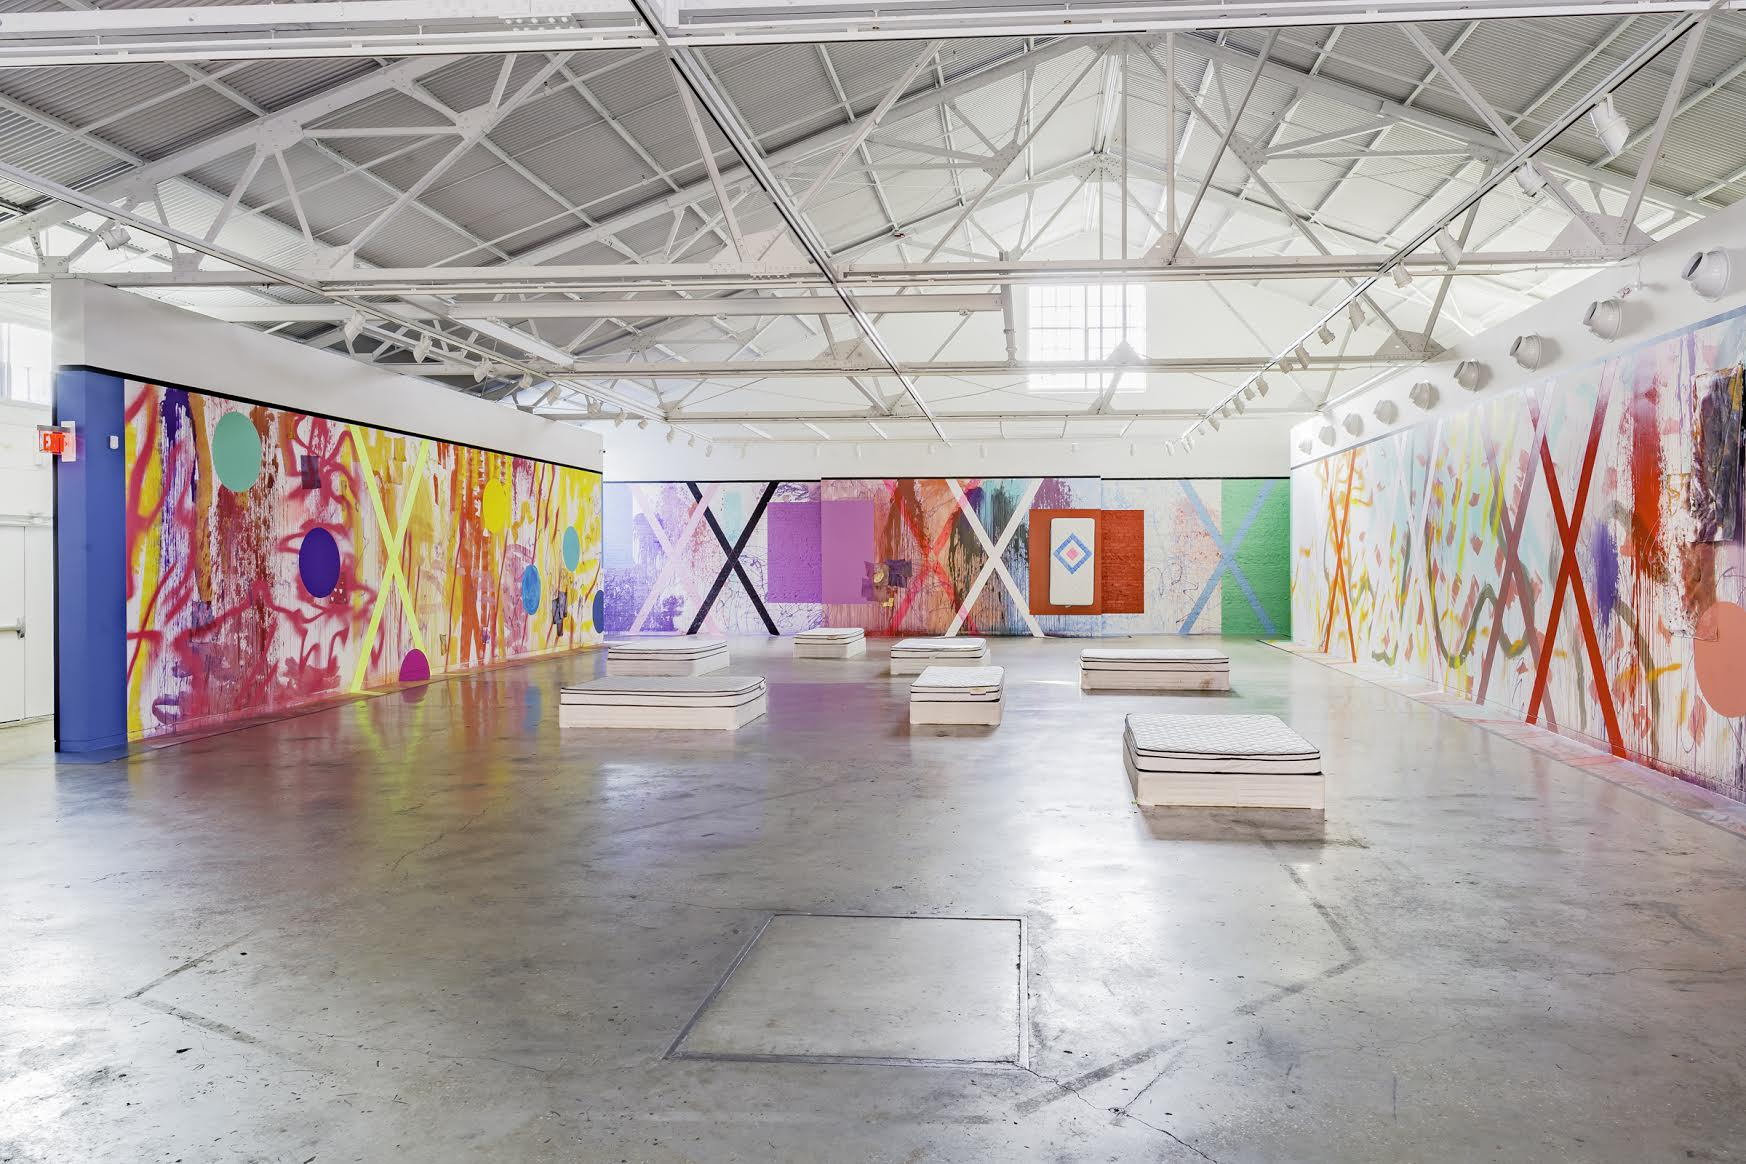 Sarah Cain, The Imaginary Architecture of Love at the Contemporary Art Museum (c